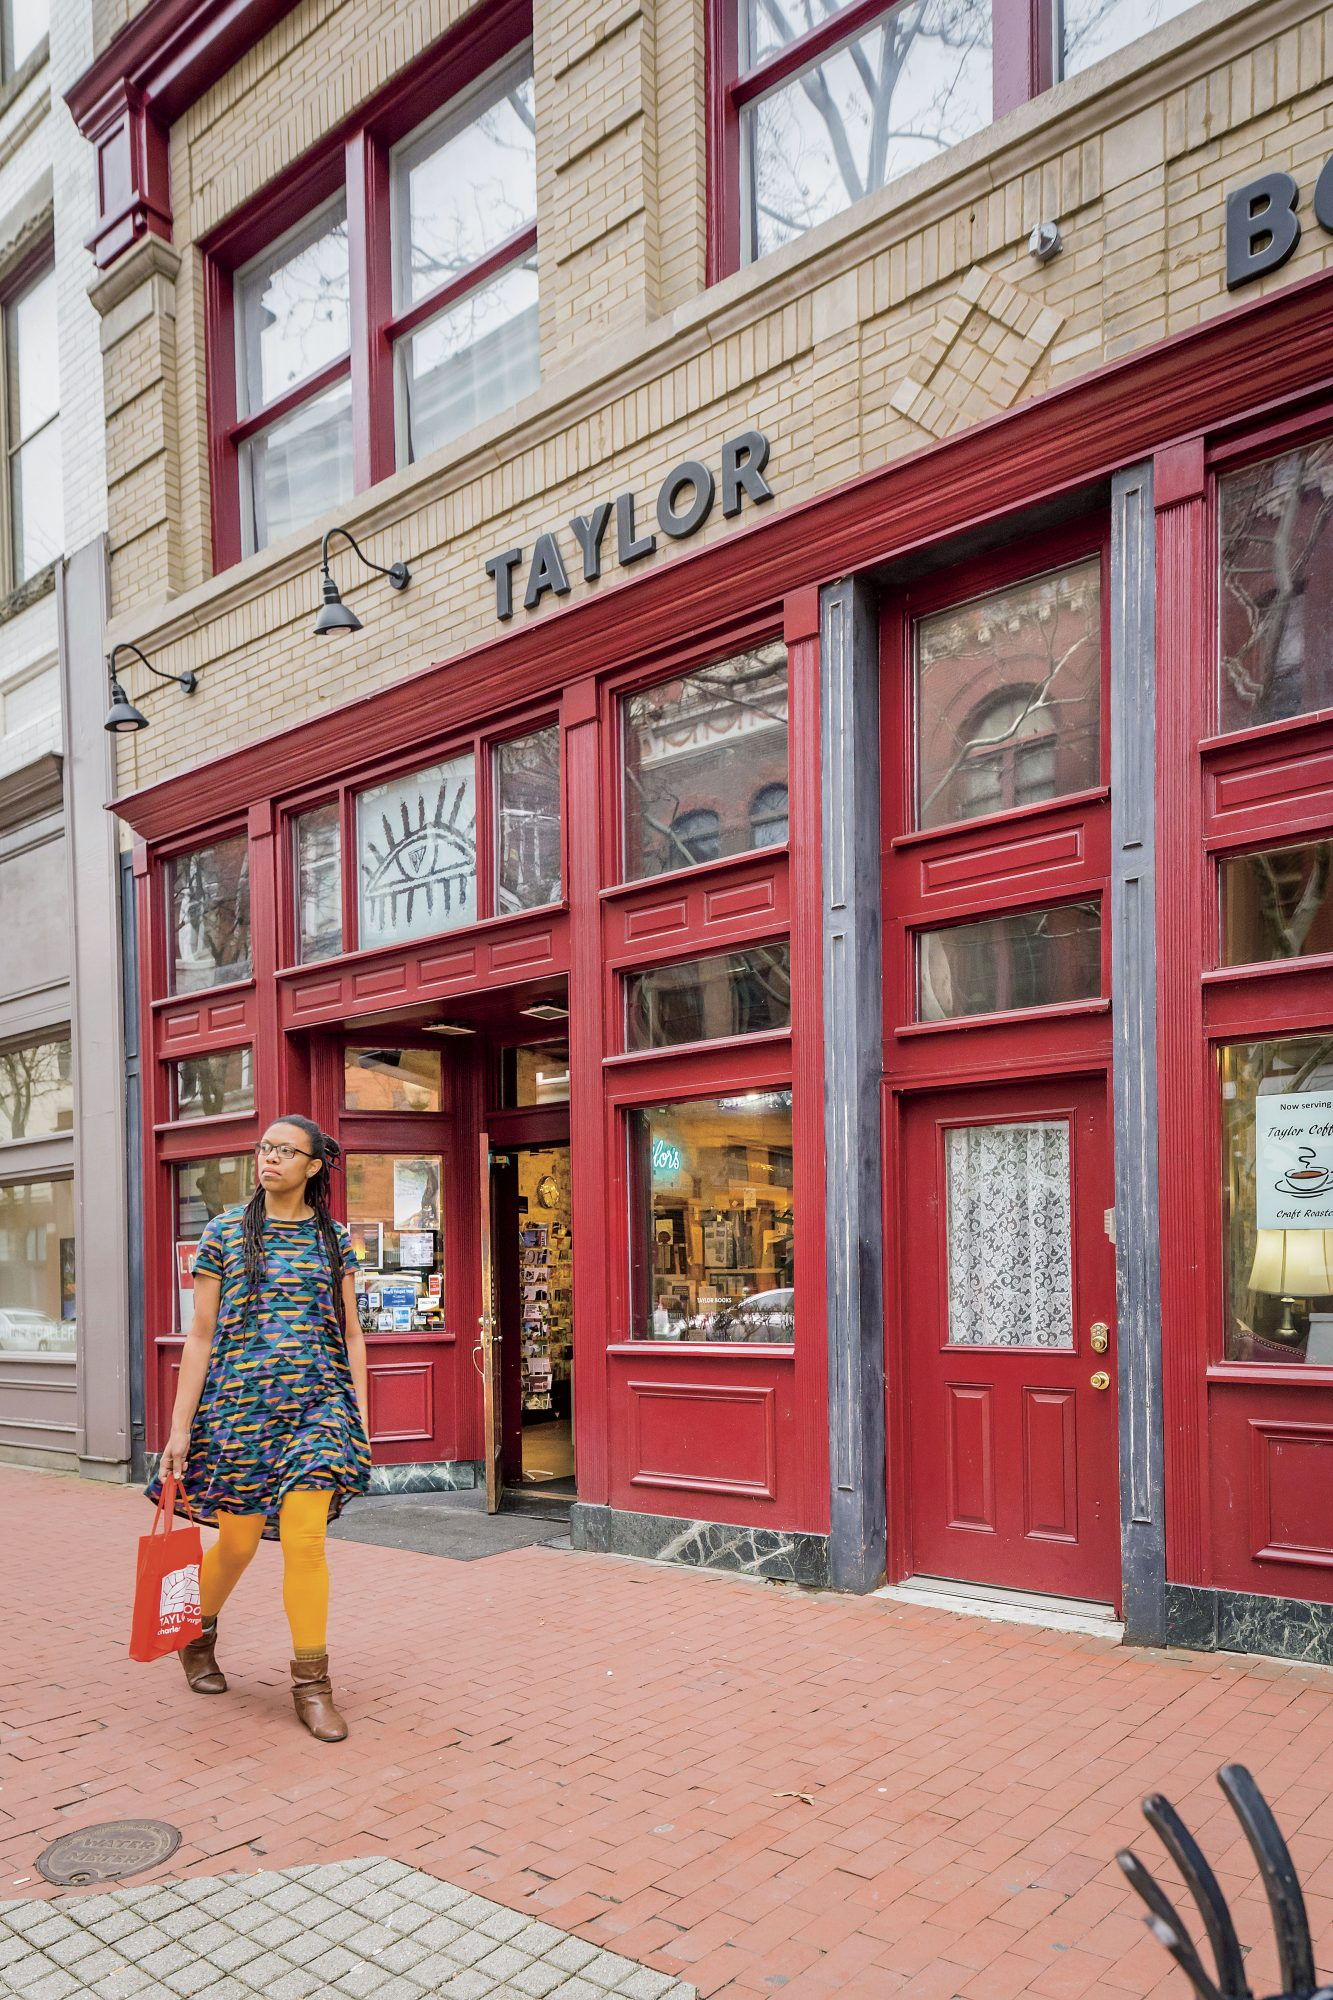 Taylor Books